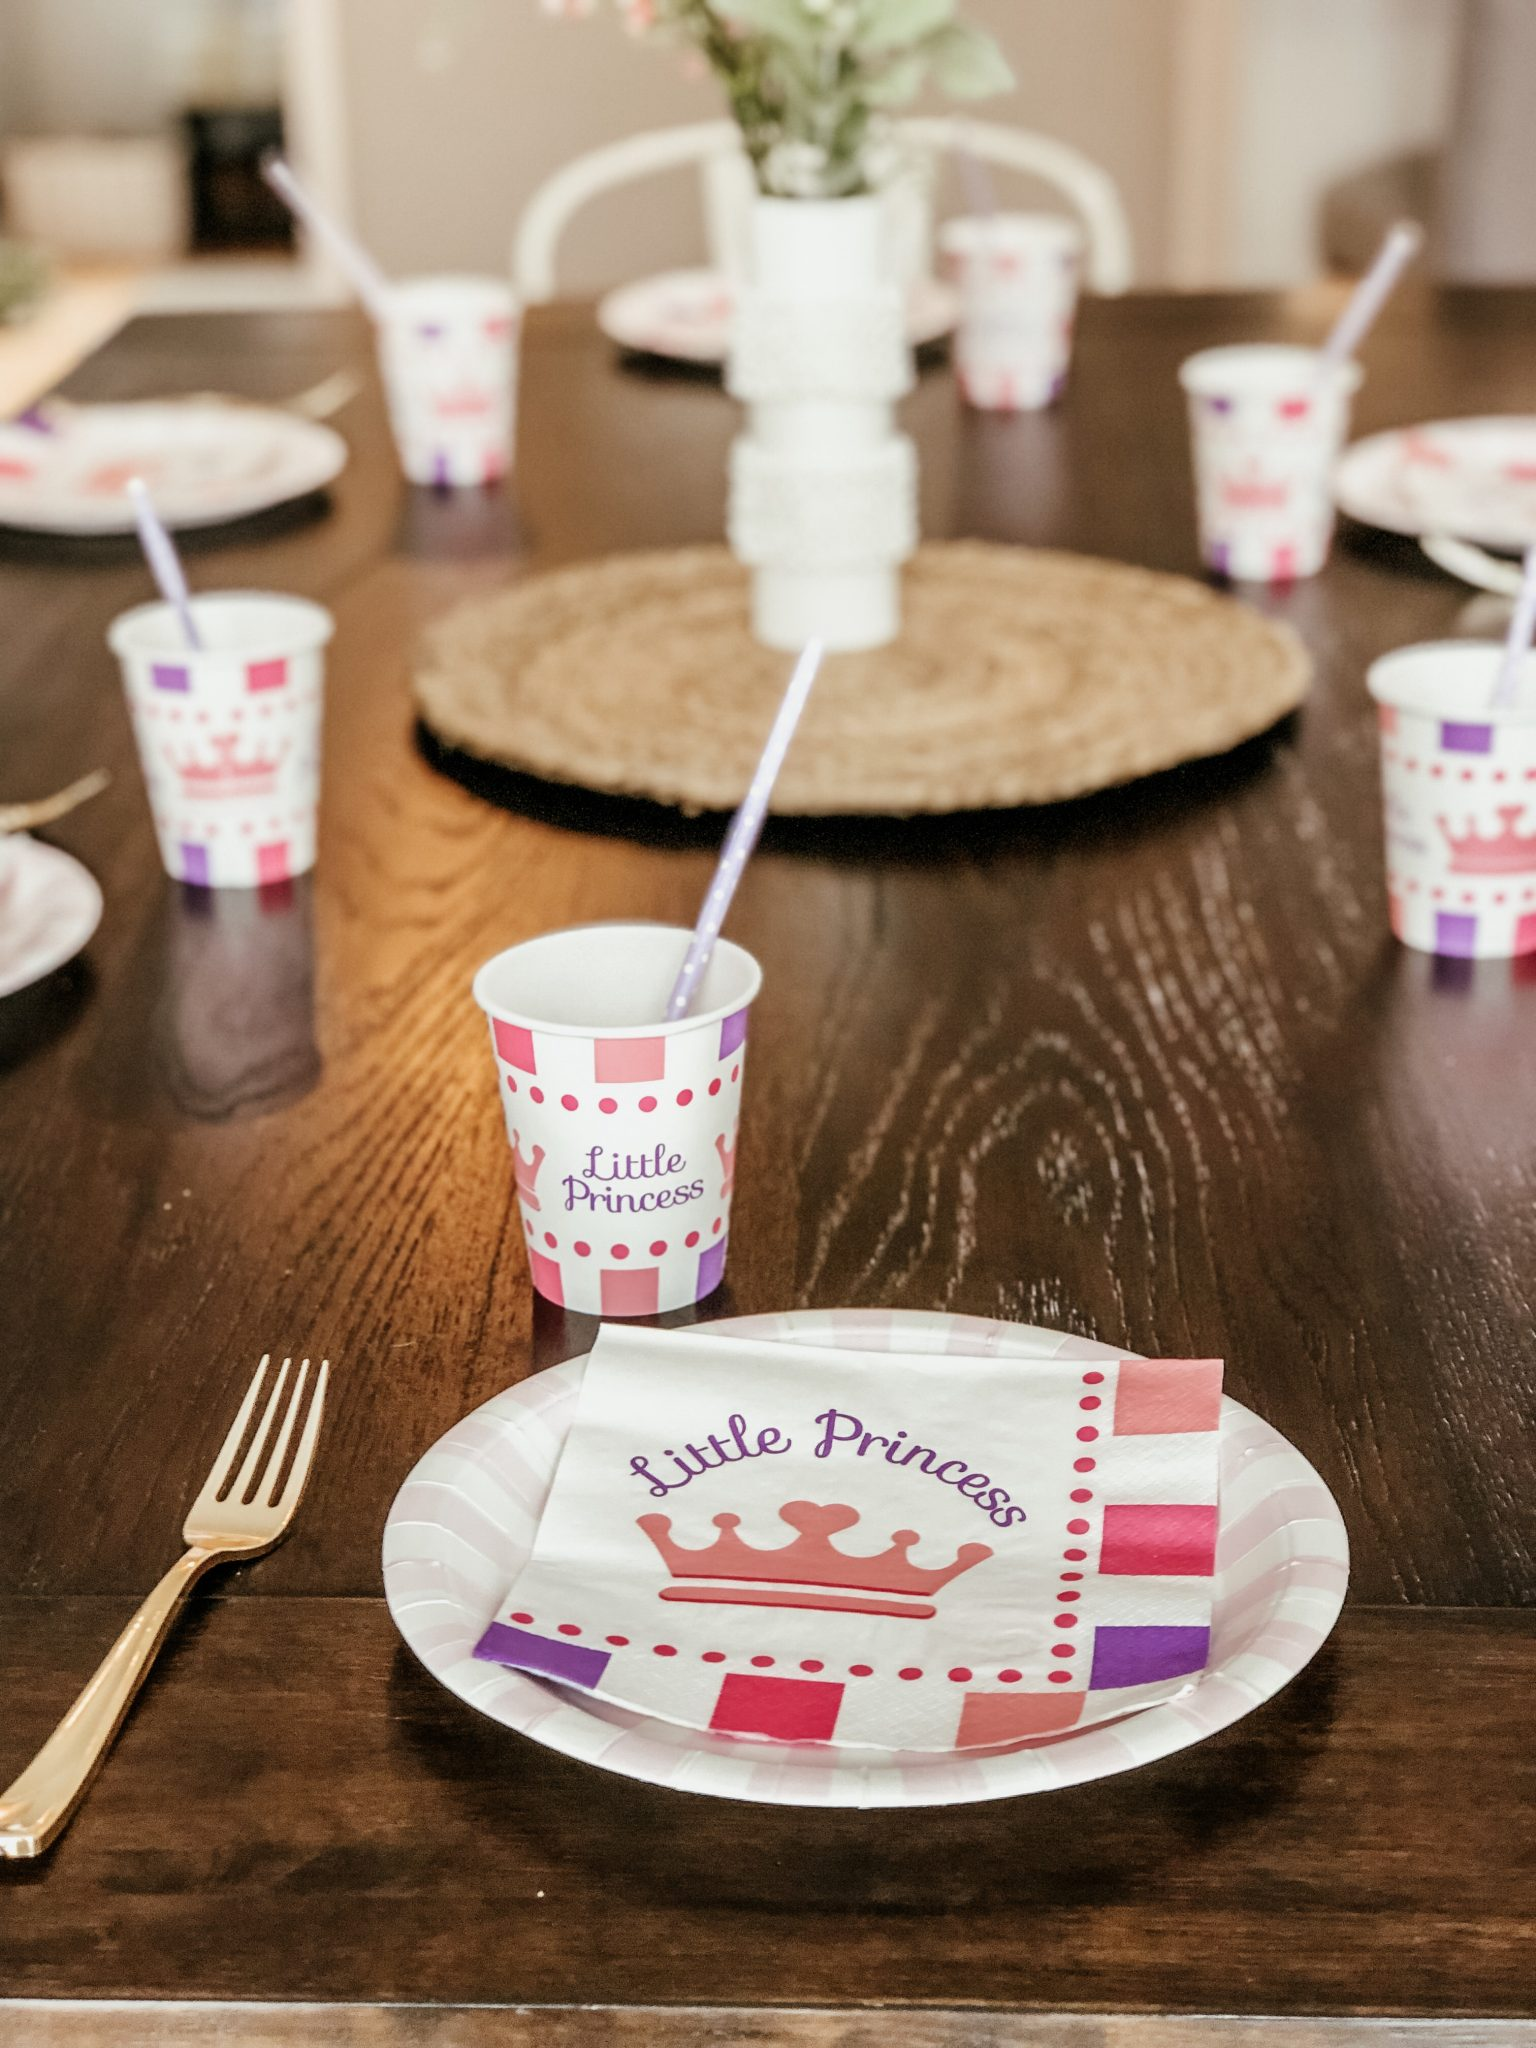 Cutest princess party made easy | Daily Splendor Life and Style Blog | Balloon garland | birthday party, girls party, party box, party decorations #birthdaydecorations #partysupplies #balloongarland #princessparty #sponsored